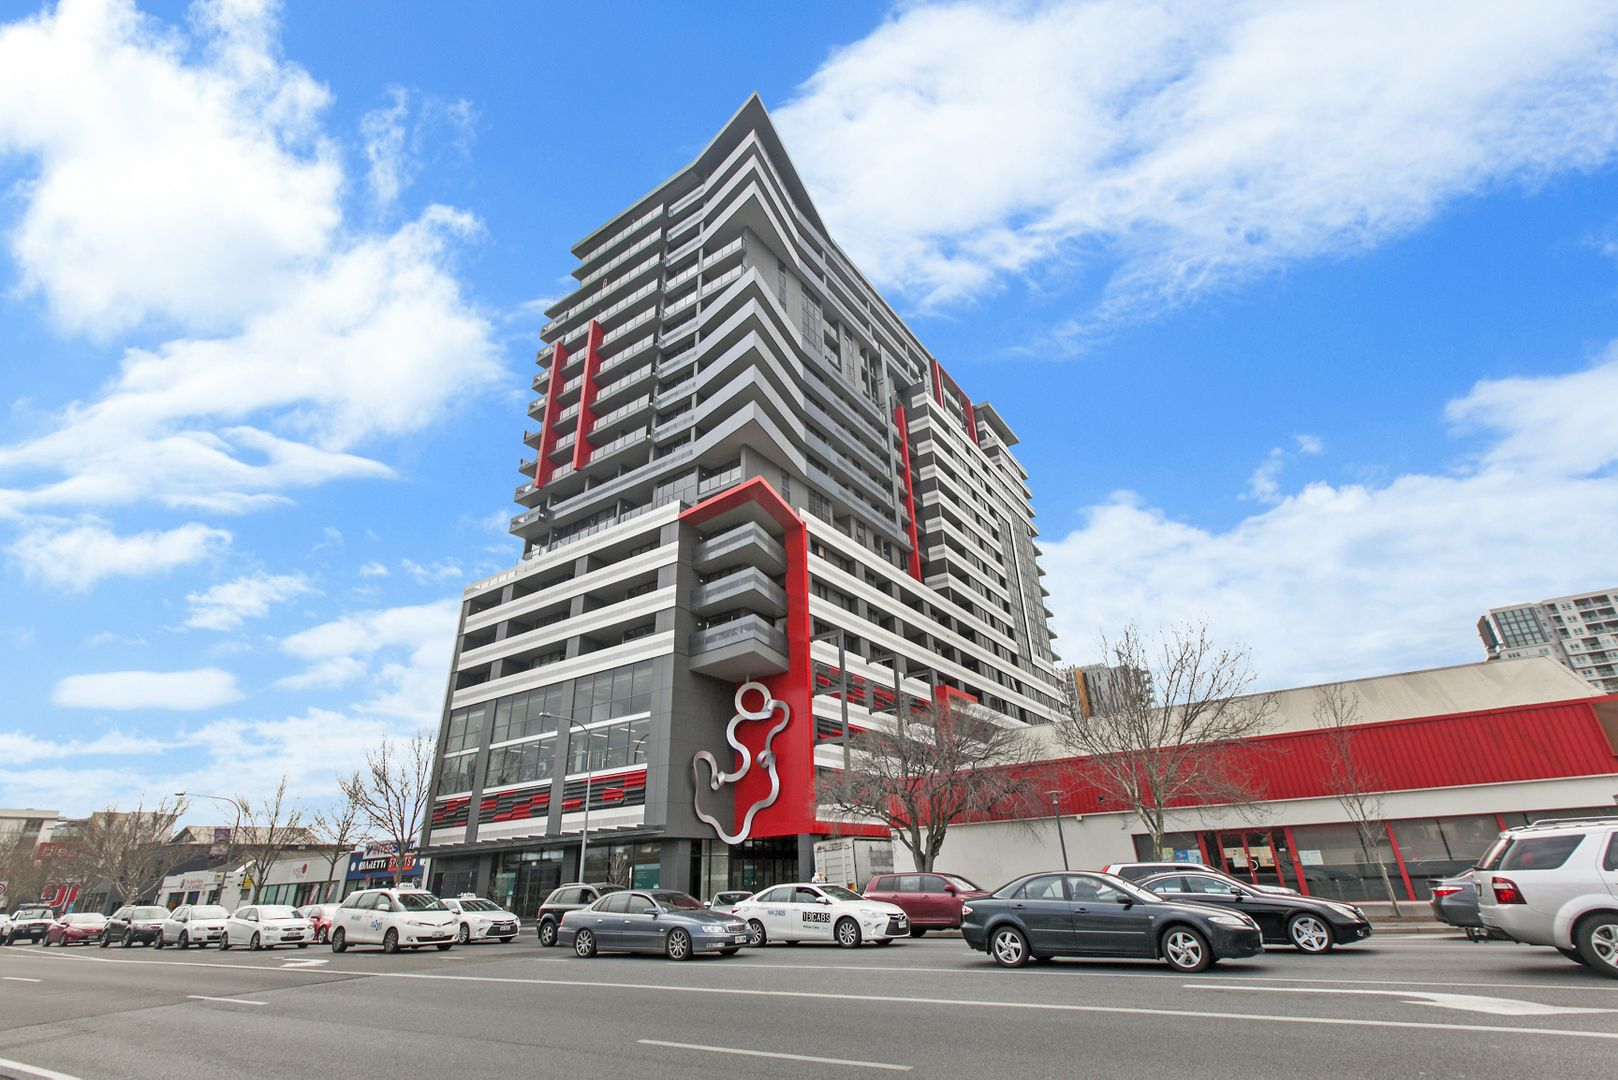 2 bedrooms Apartment / Unit / Flat in 219/160 Grote  Street ADELAIDE SA, 5000